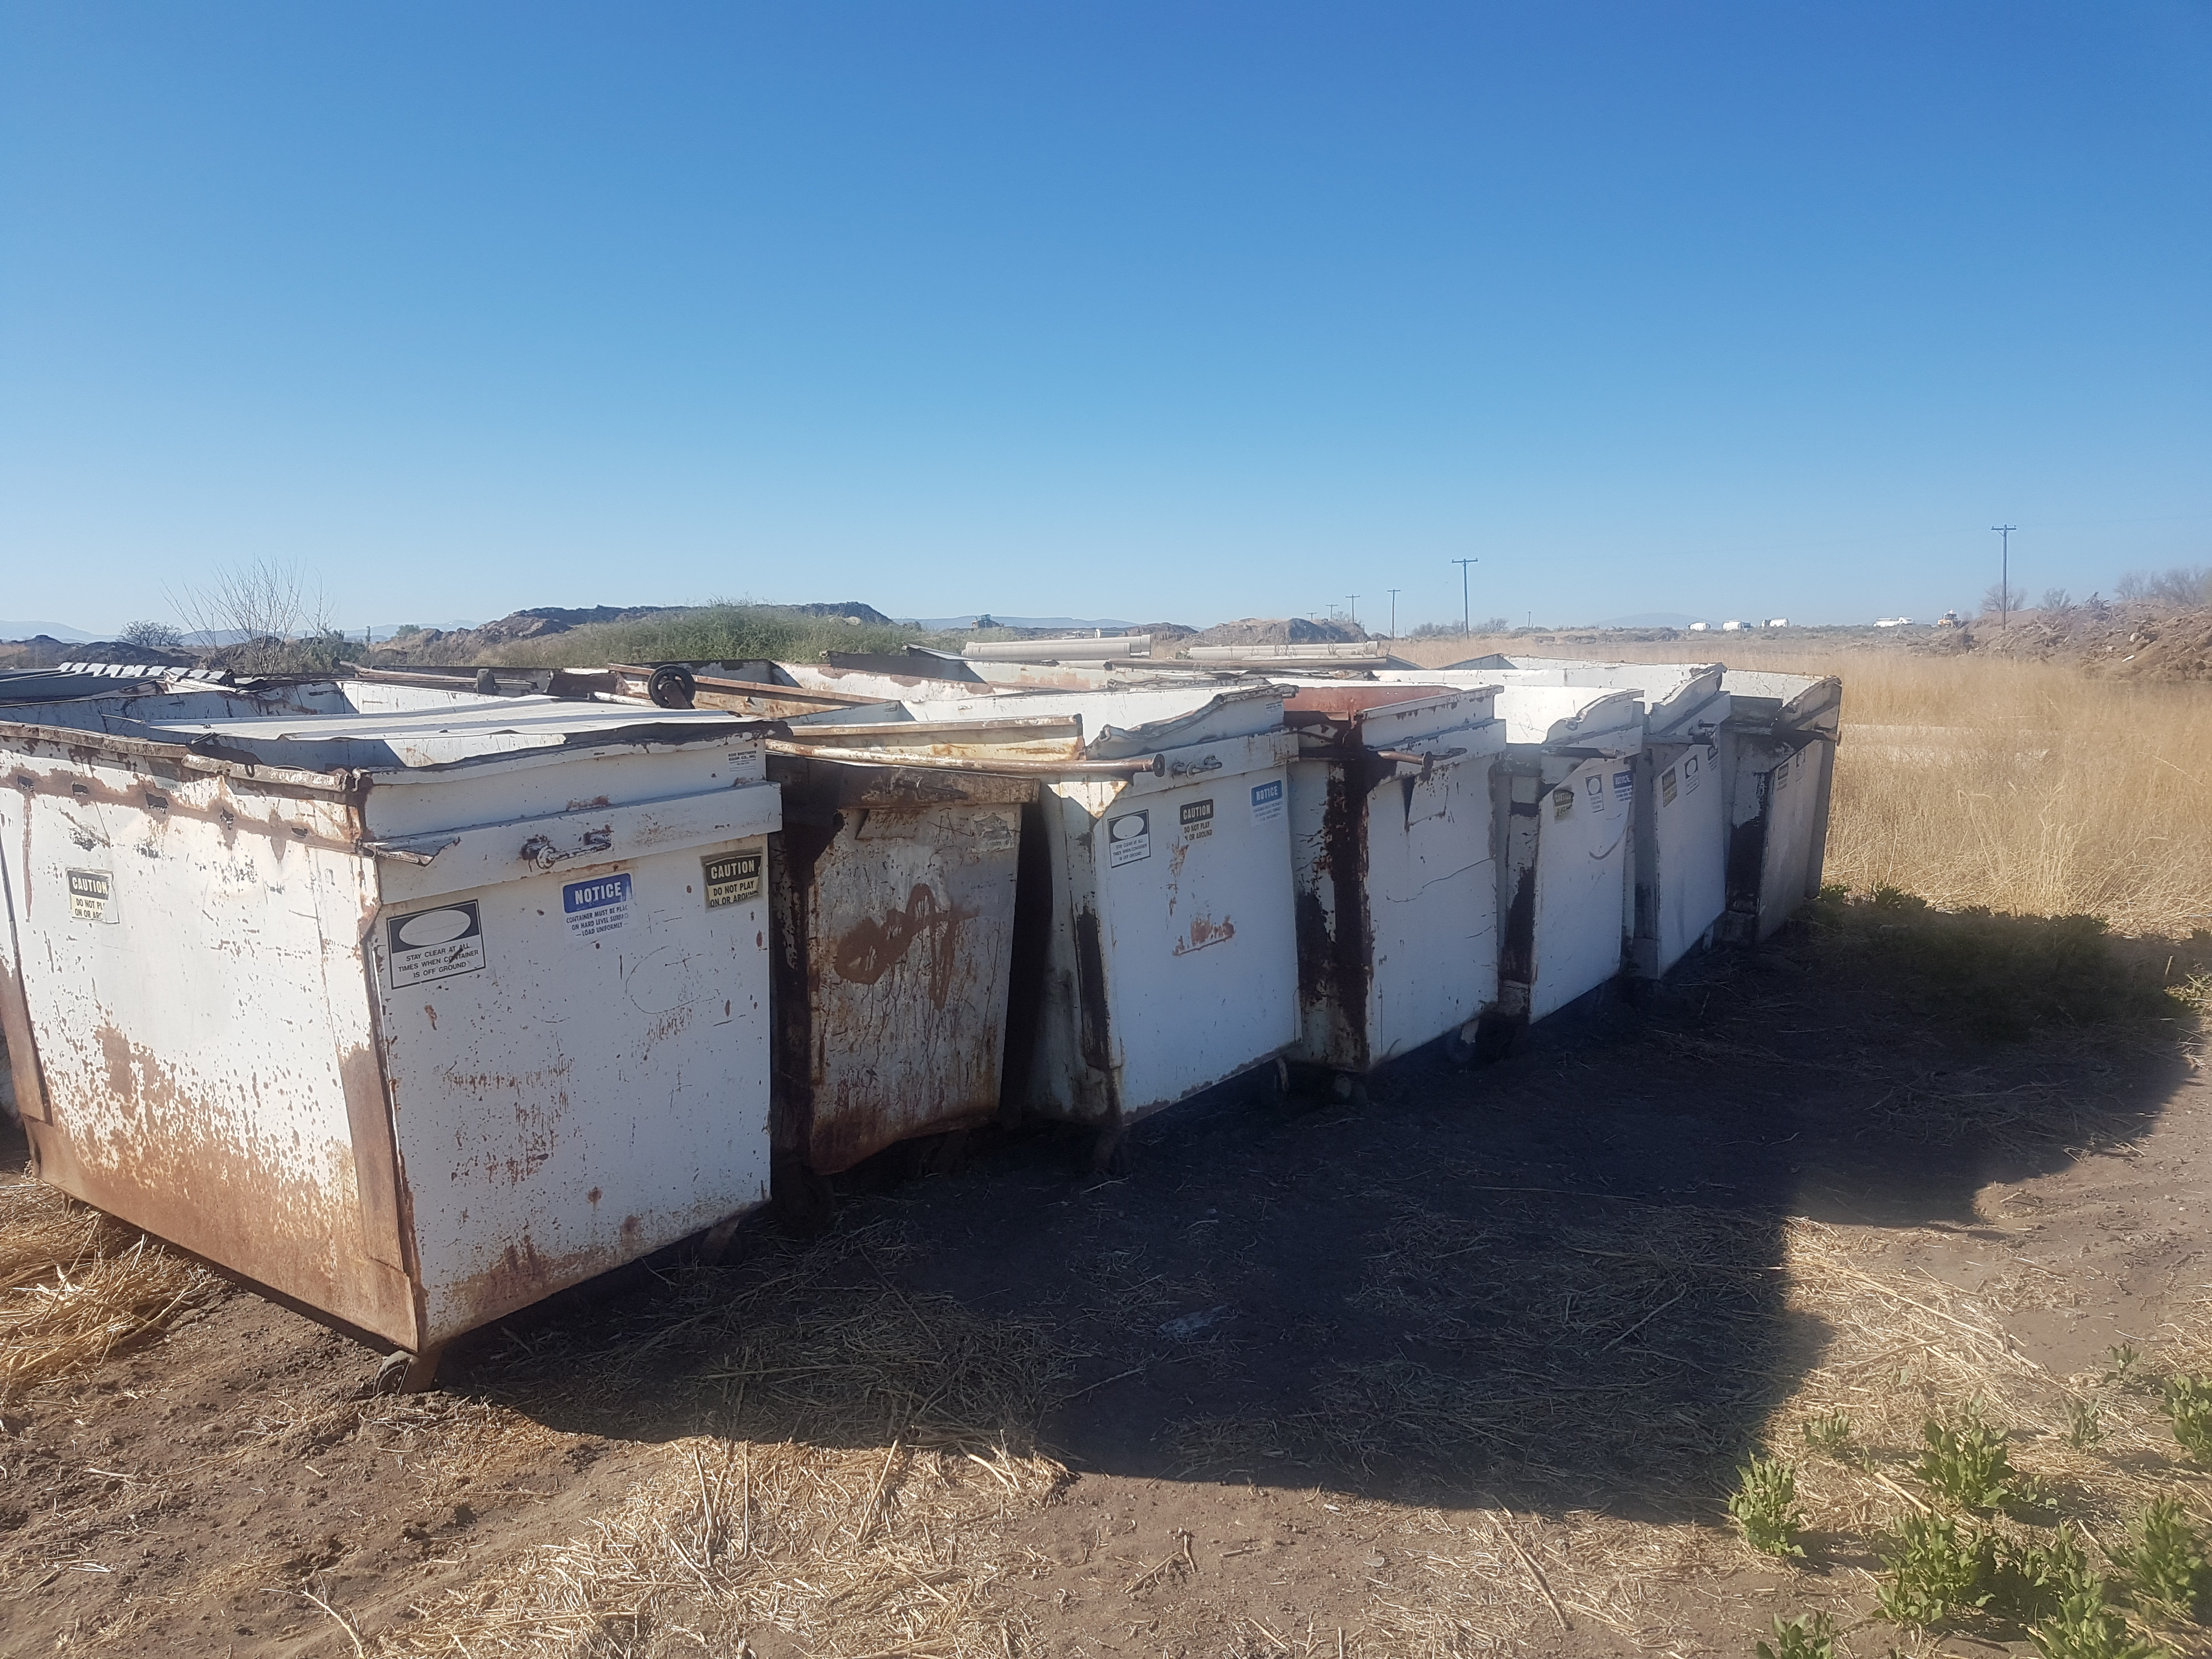 Lot of 22 Decommissioned Dumpsters